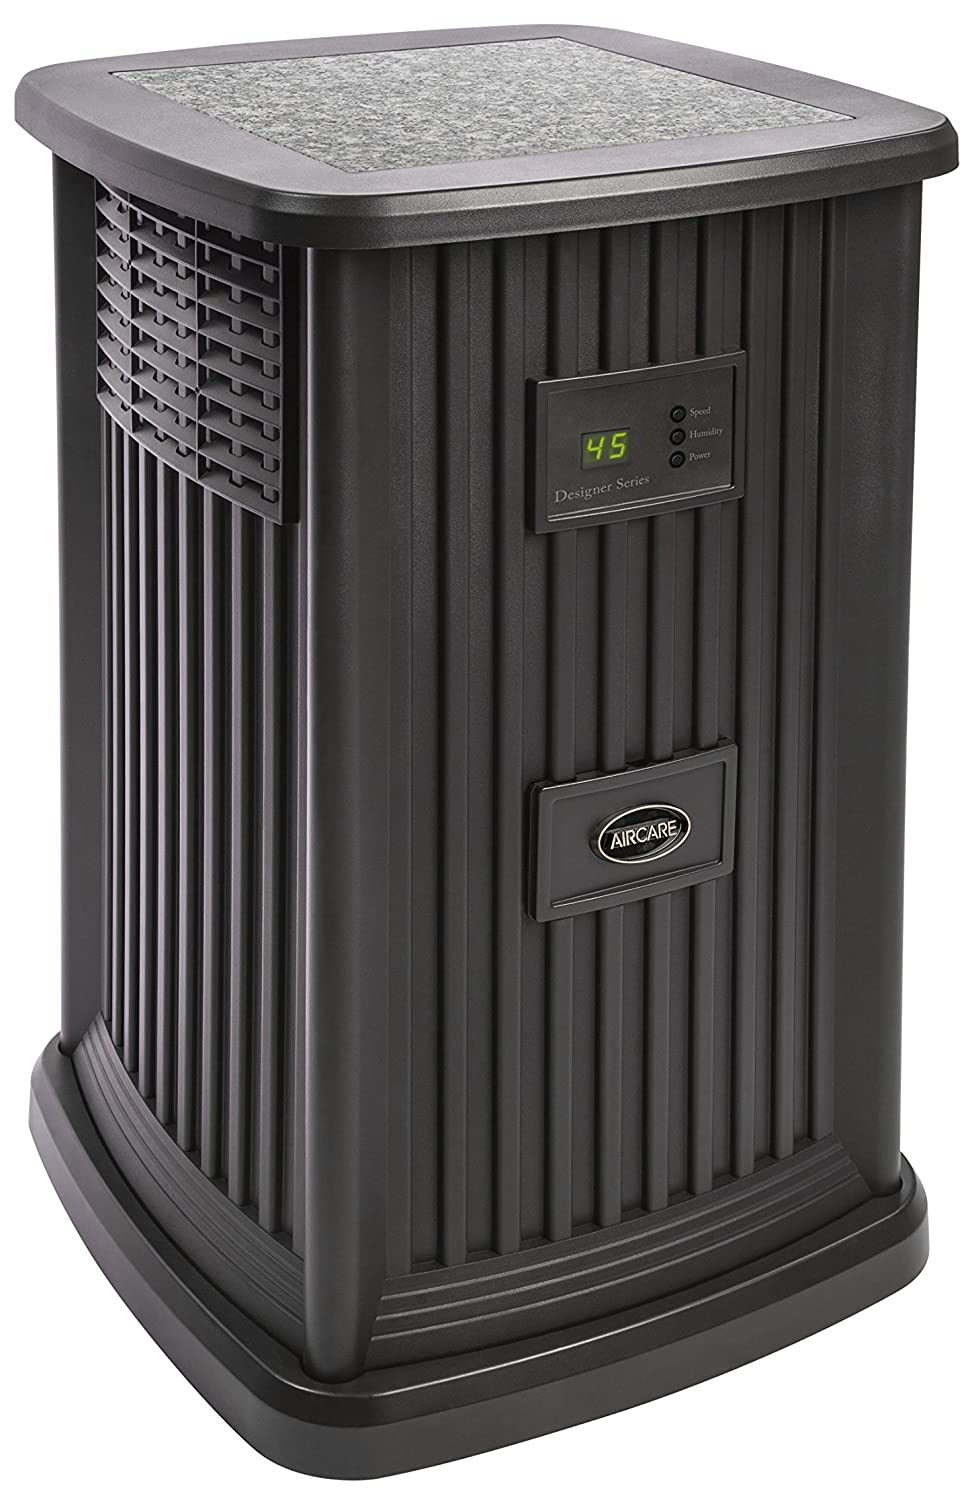 AIRCARE EP9 800 Digital Whole-House Pedestal-Style Evaporative Humidifier, Espresso Essick Air